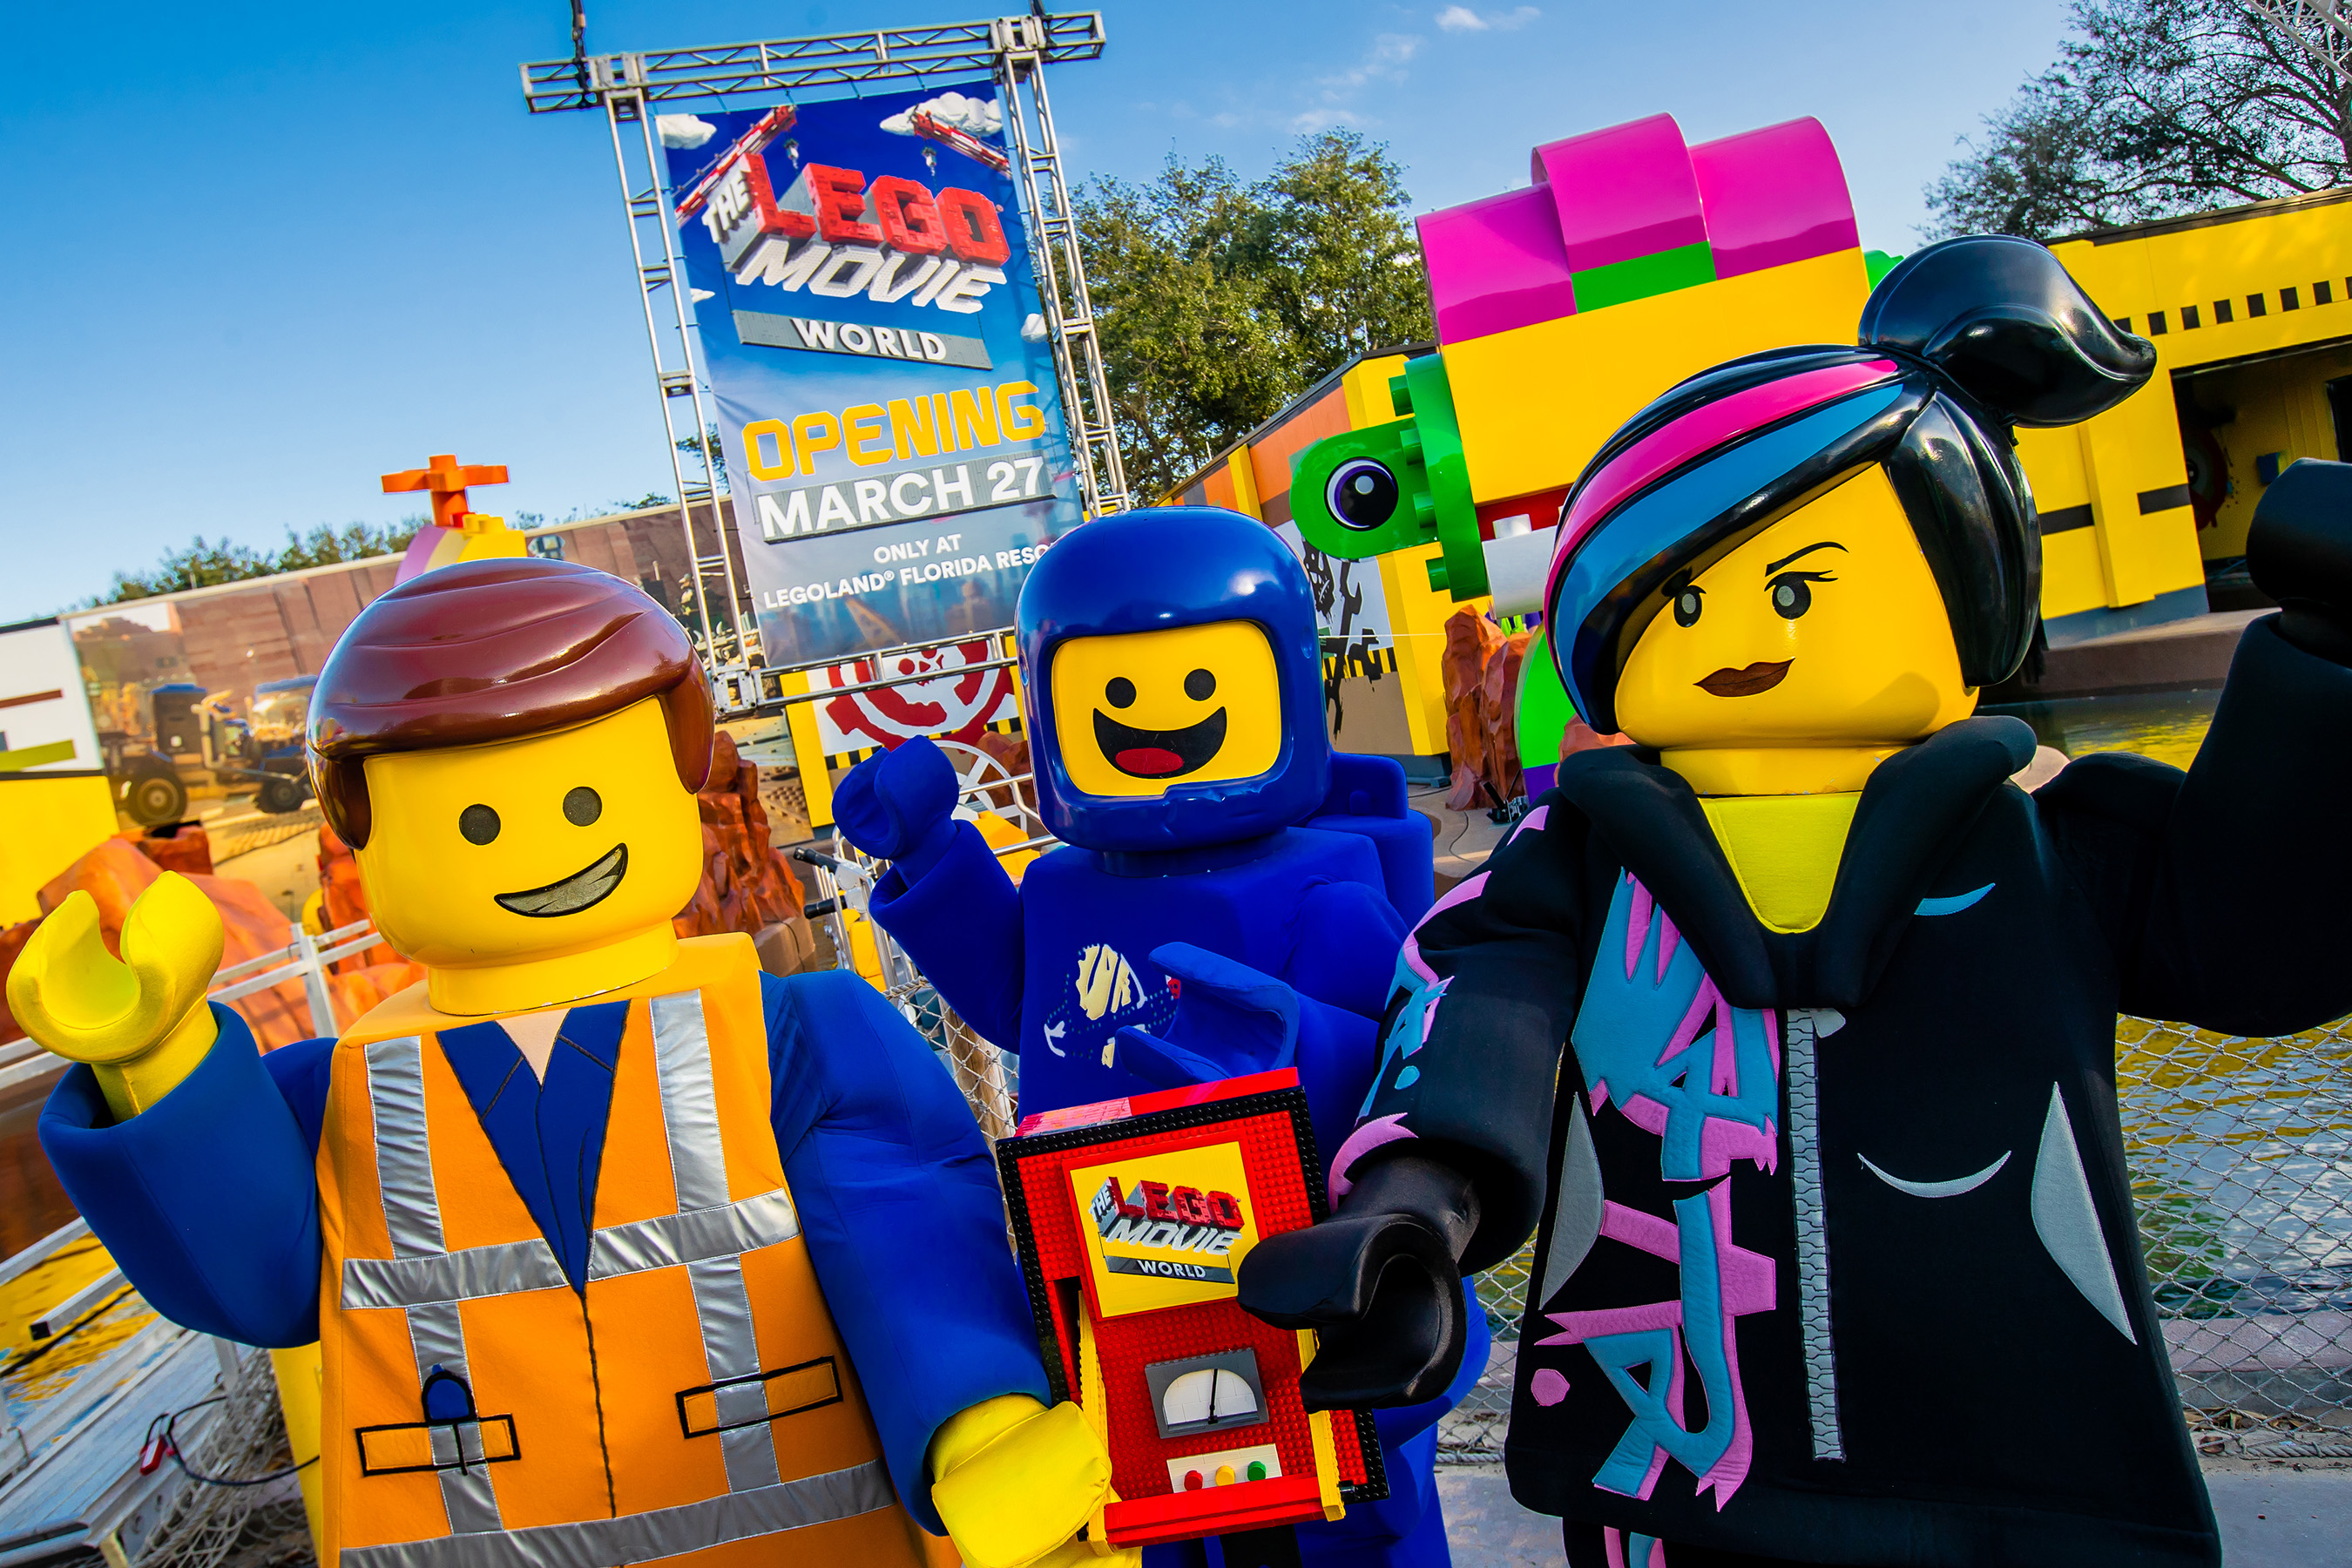 THE LEGO® MOVIE™ WORLD opening March 27, 2019 only at LEGOLAND® Florida Resort